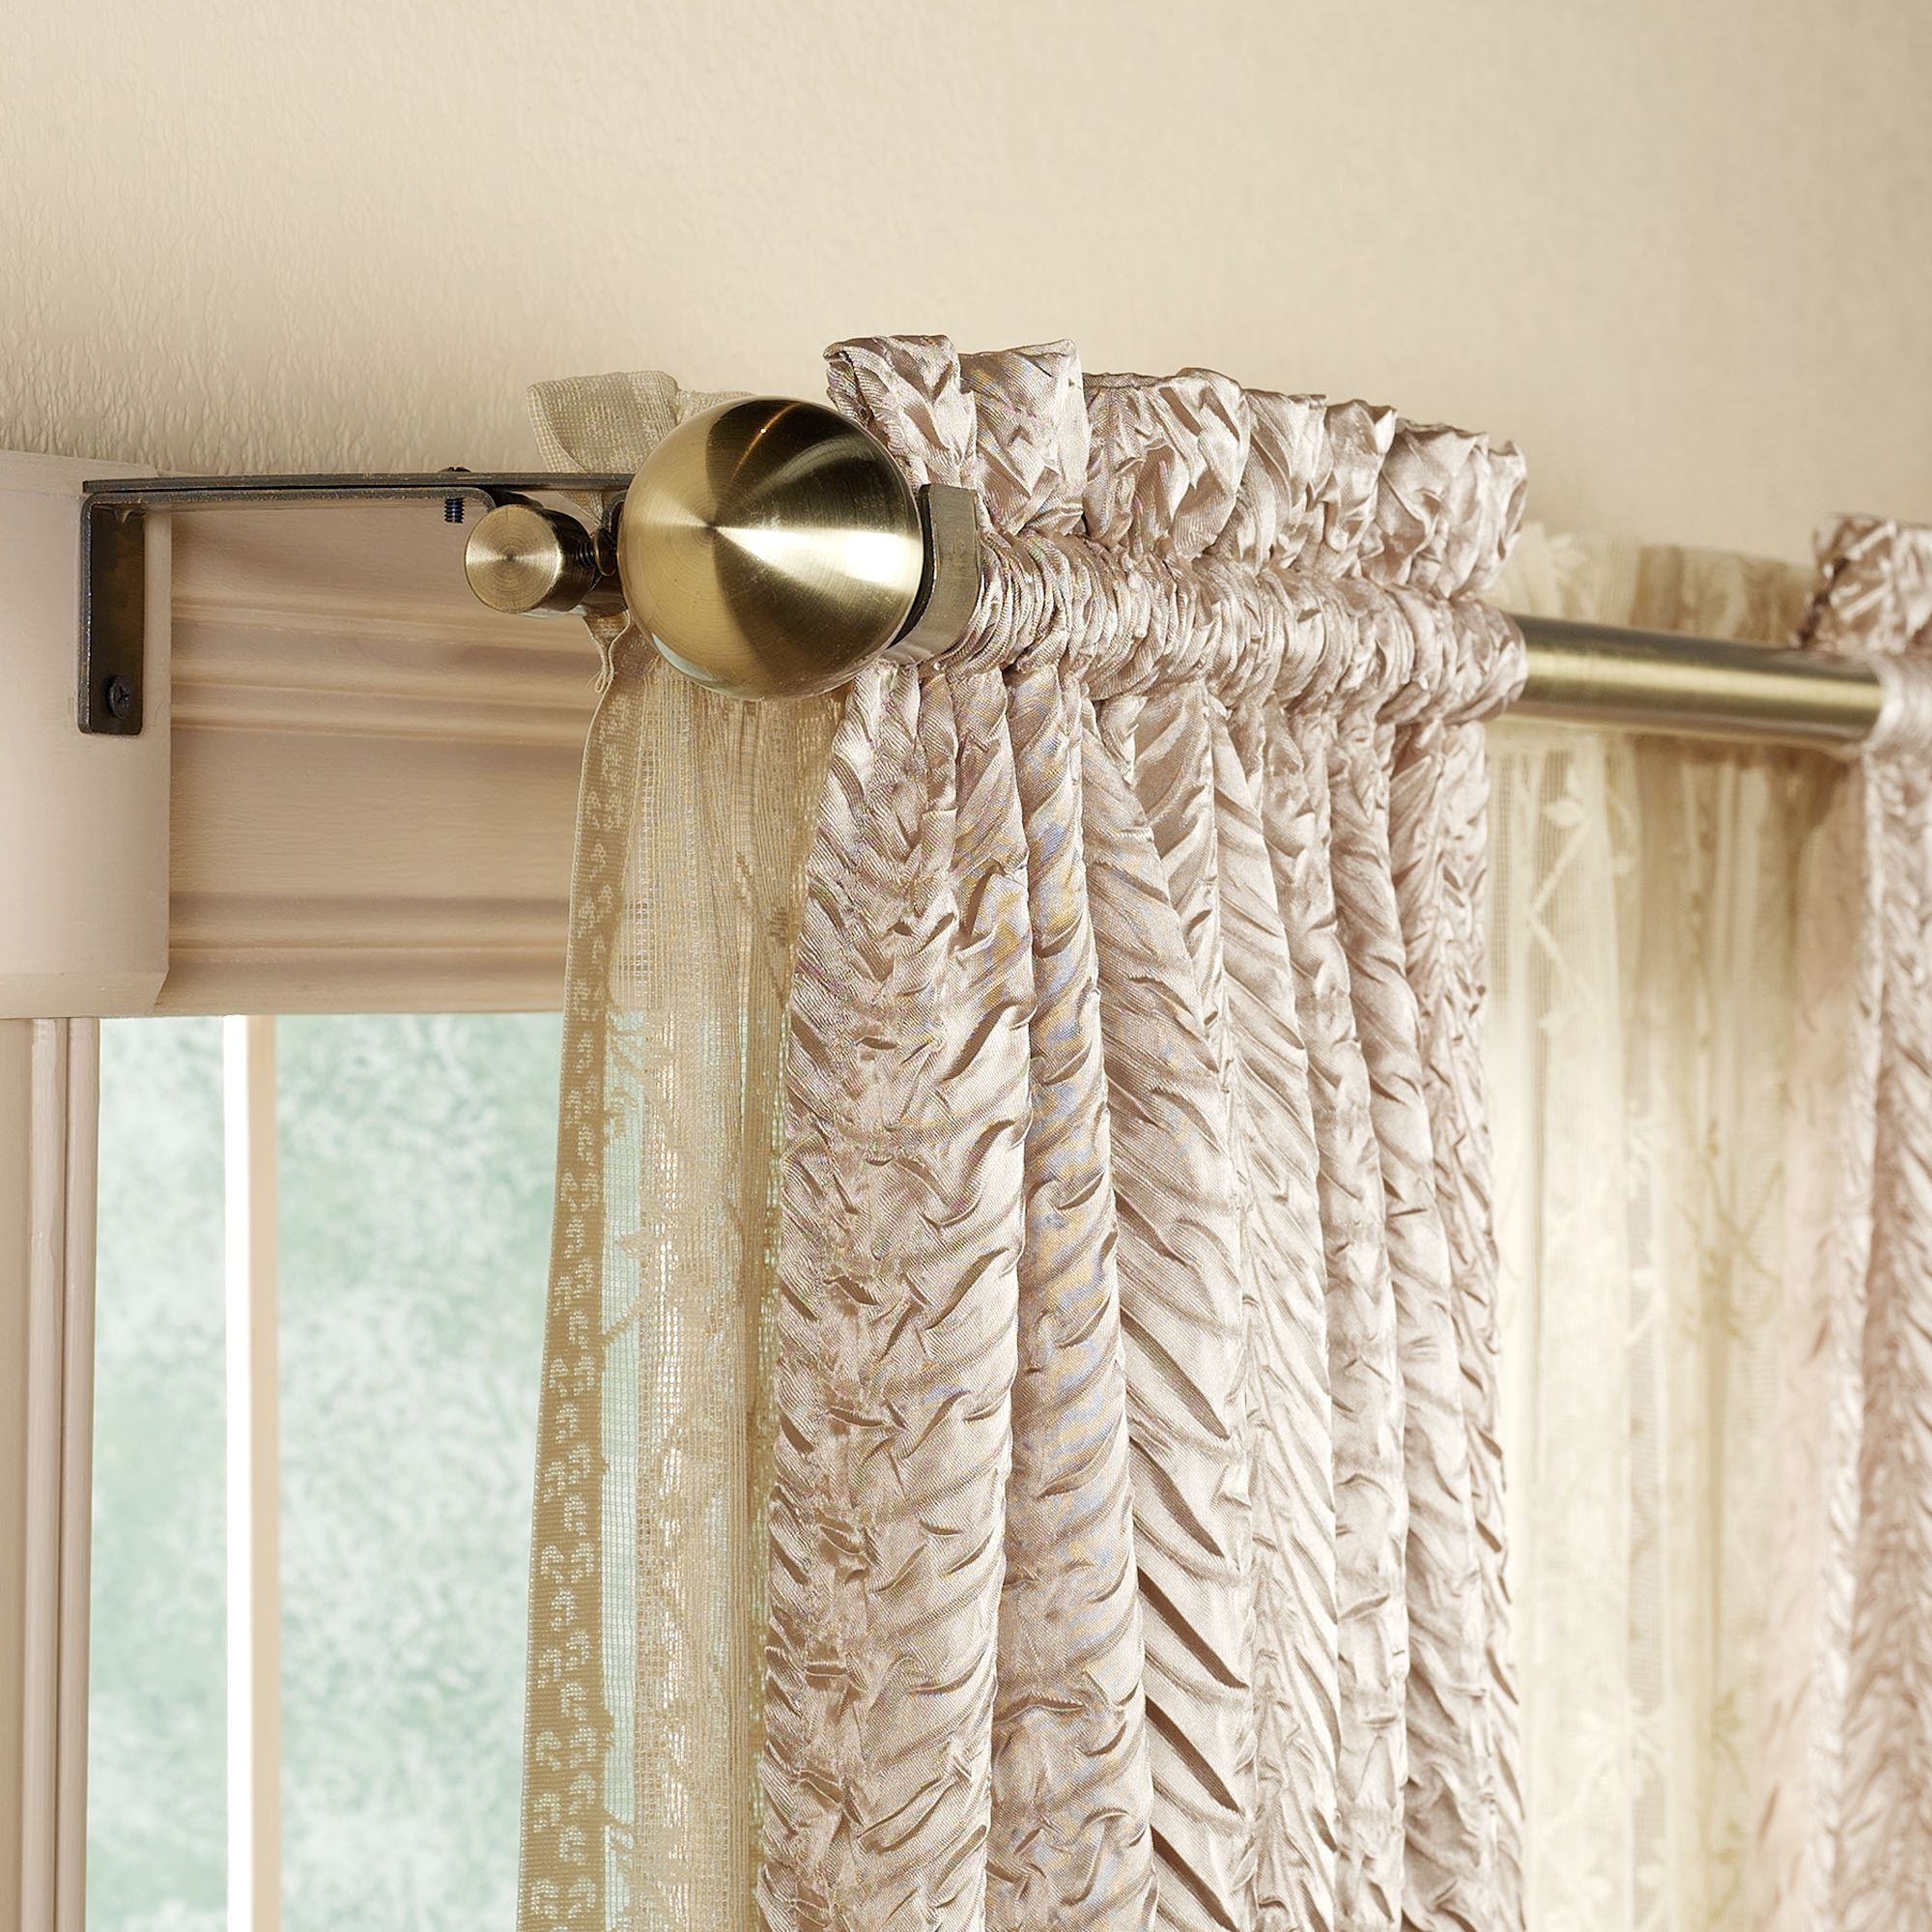 Decorative Double Curtain Rod